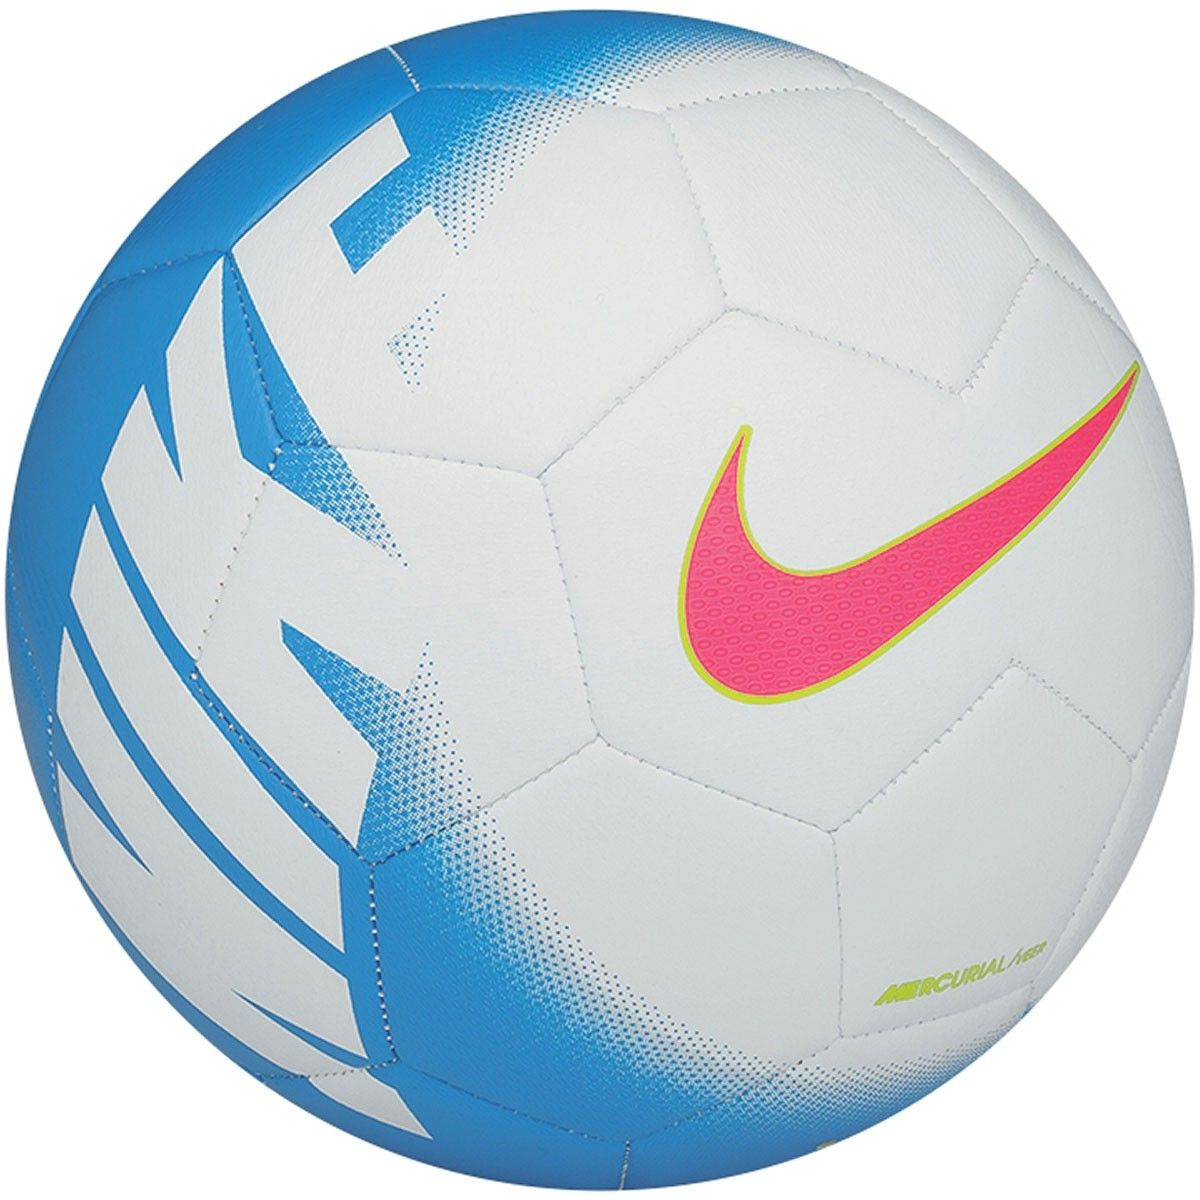 Pink Nike Soccer Ball Hd Images 3 Hd Wallpapers Amagico Com Nike Soccer Ball Soccer Ball Nike Soccer